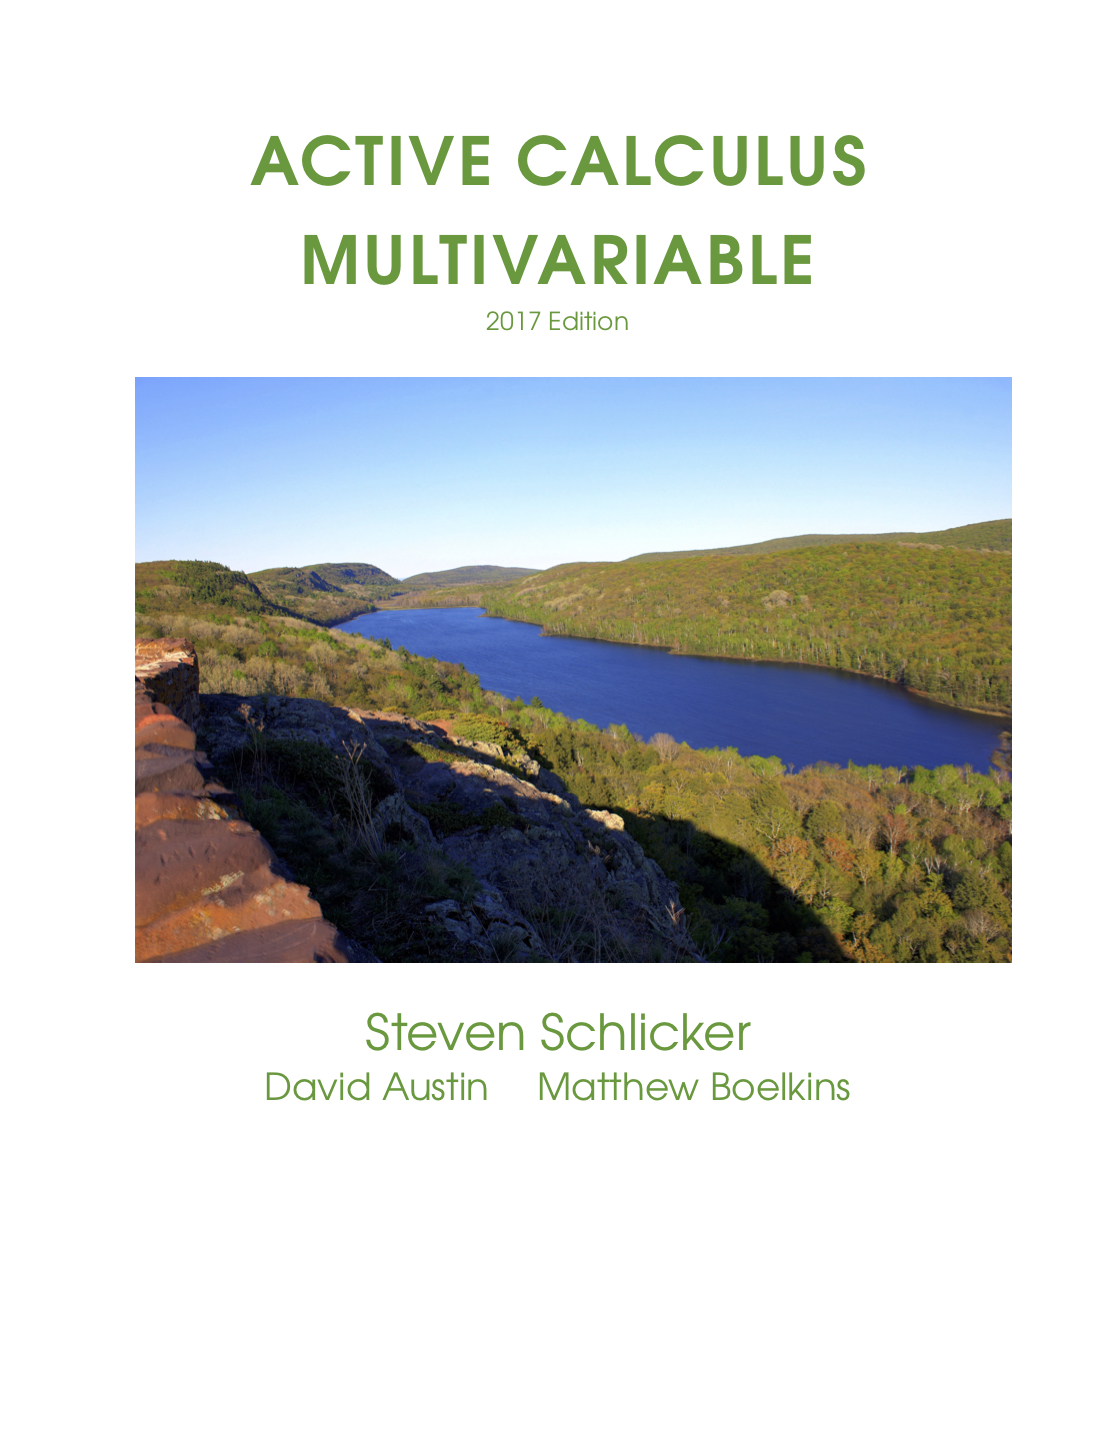 Active Calculus - Multivariable - 2017 Edition